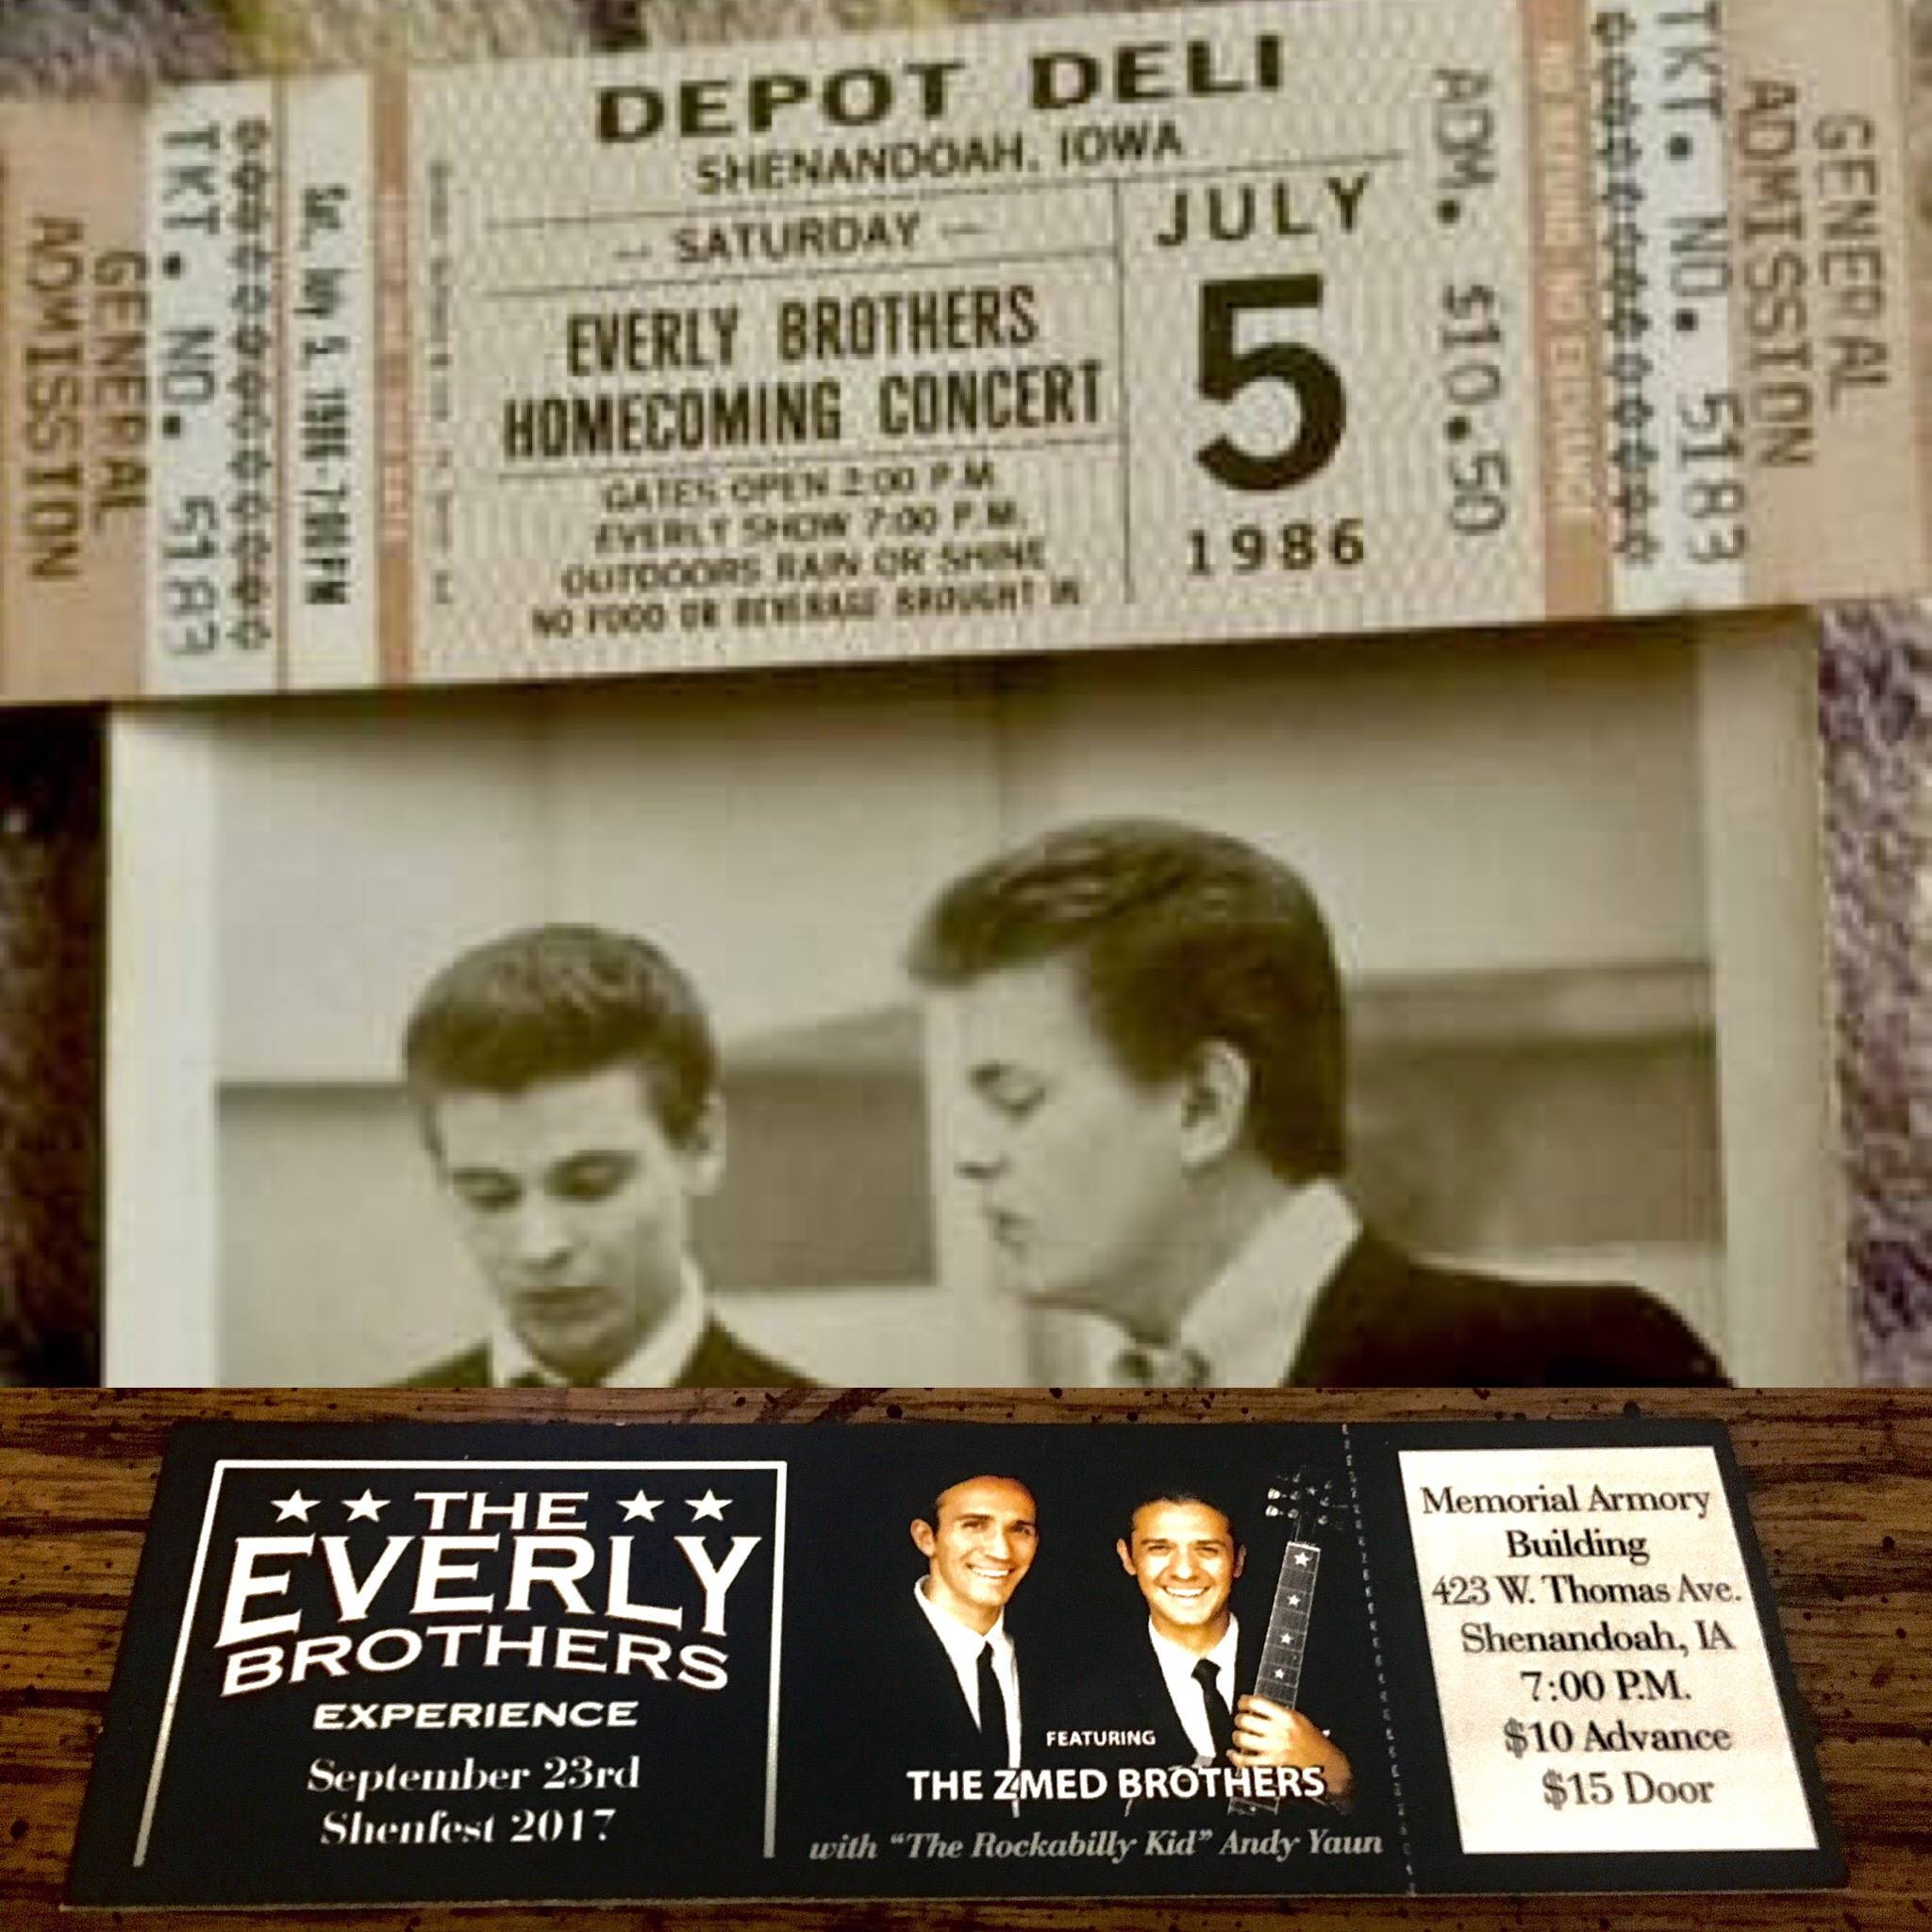 (top) 1896 Everly Brothers Homecoming ticket (bottom) Our Shenfest ticket from 2017